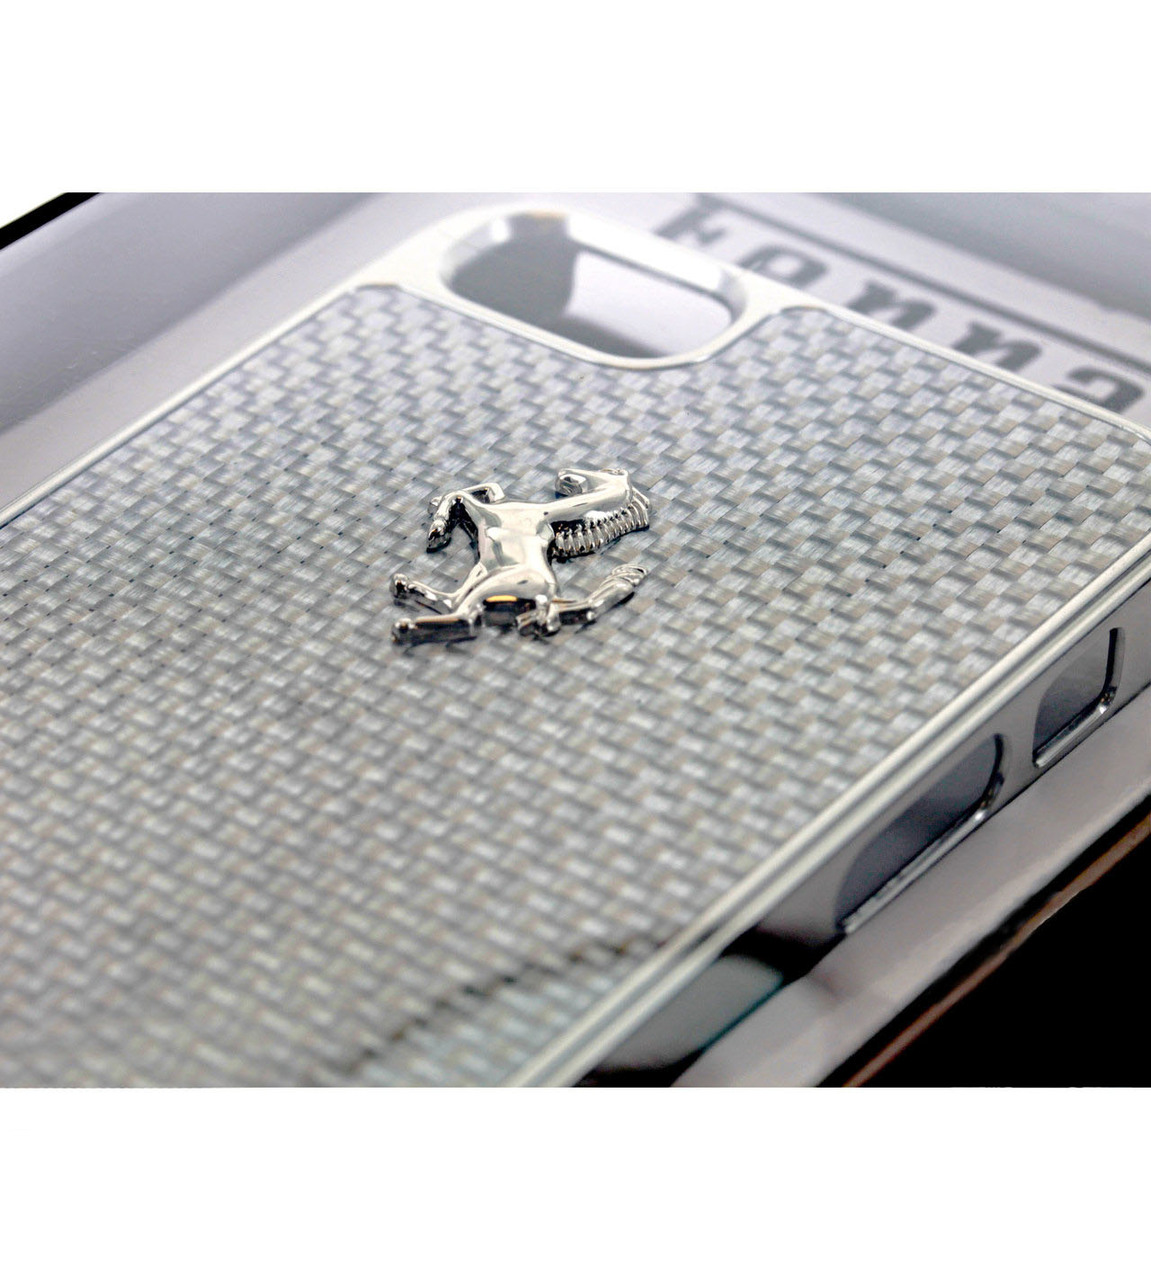 A close up look at the ferrari cell phone case